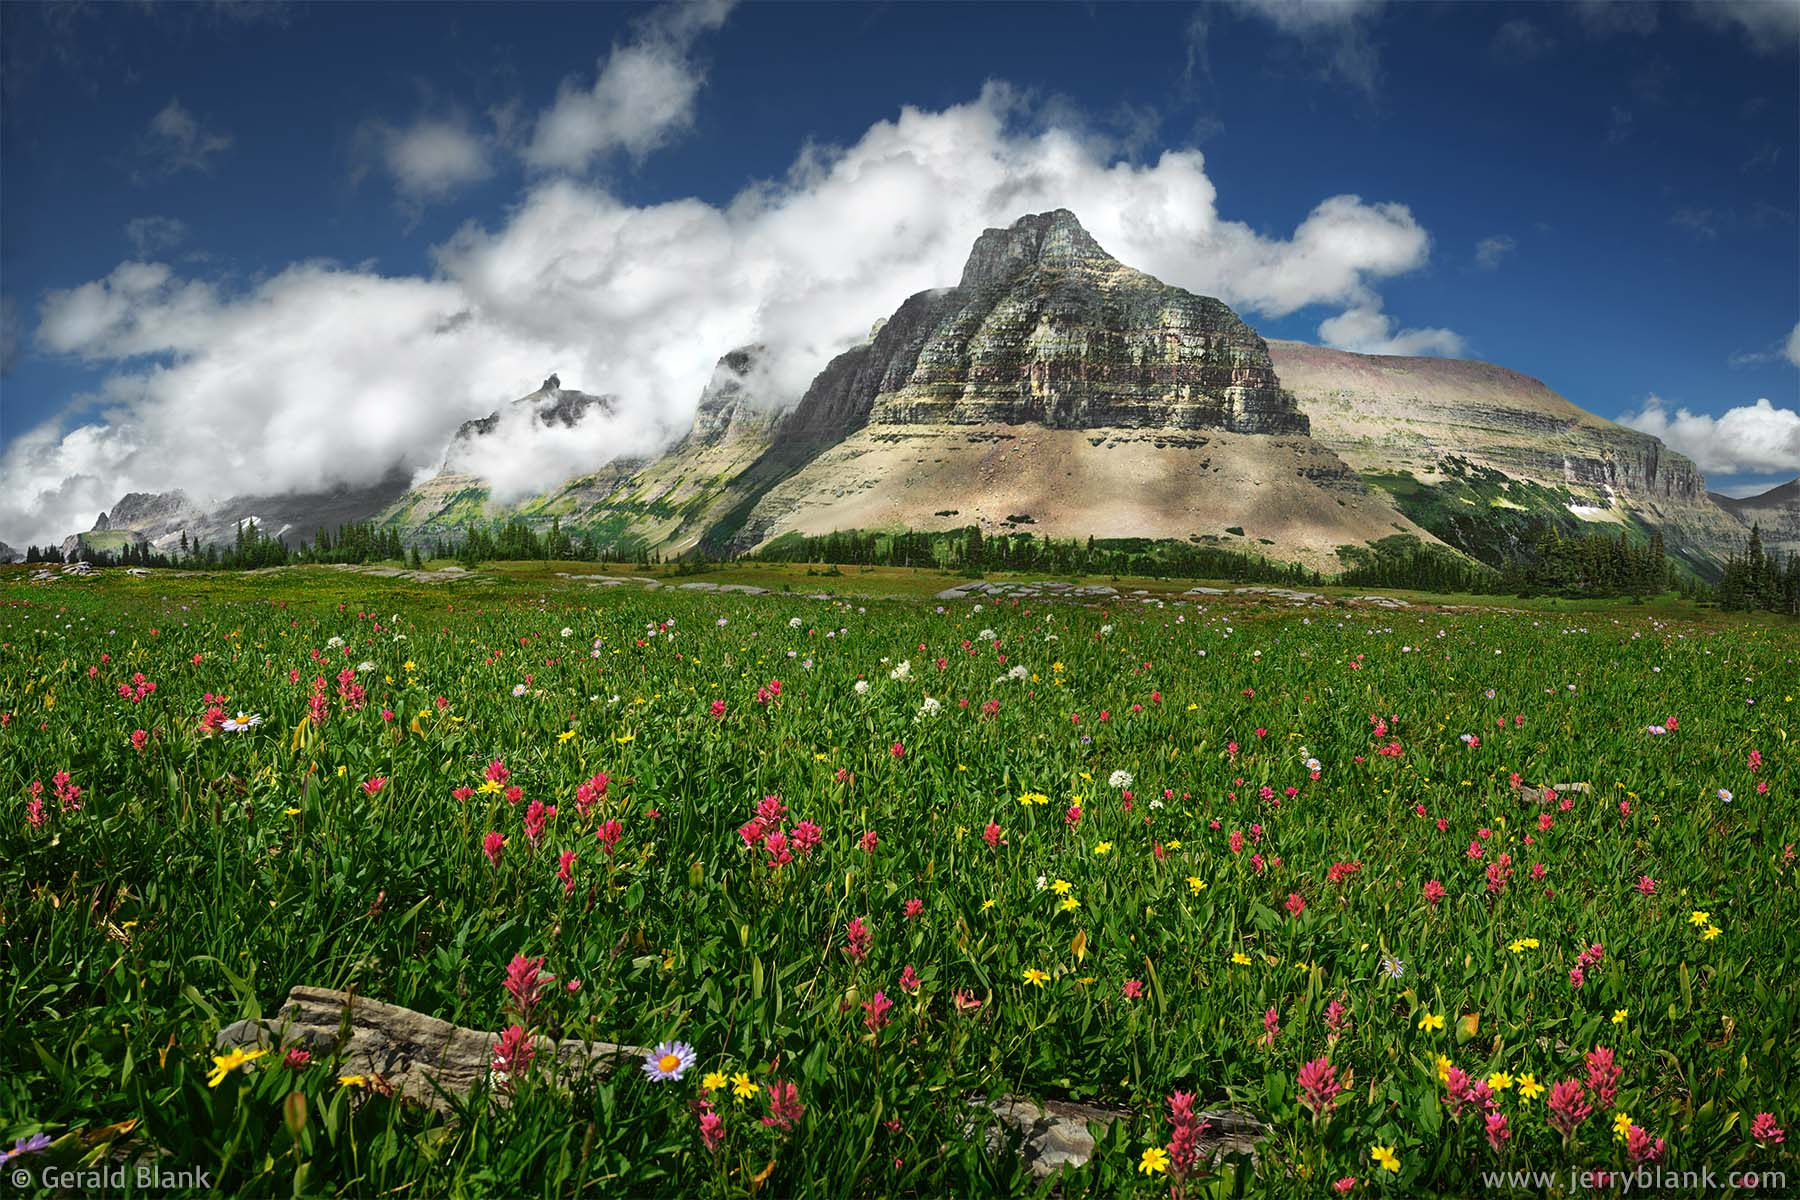 #24533 - A north view toward Bishop's Cap, the Garden Wall, the south ridge of Pollock Mountain, and the east ridge of Piegan Mountain, from an alpine meadow filled with arnica and scarlet paintbrush, in Glacier National Park, Montana - wildflowers photo by Jerry Blank